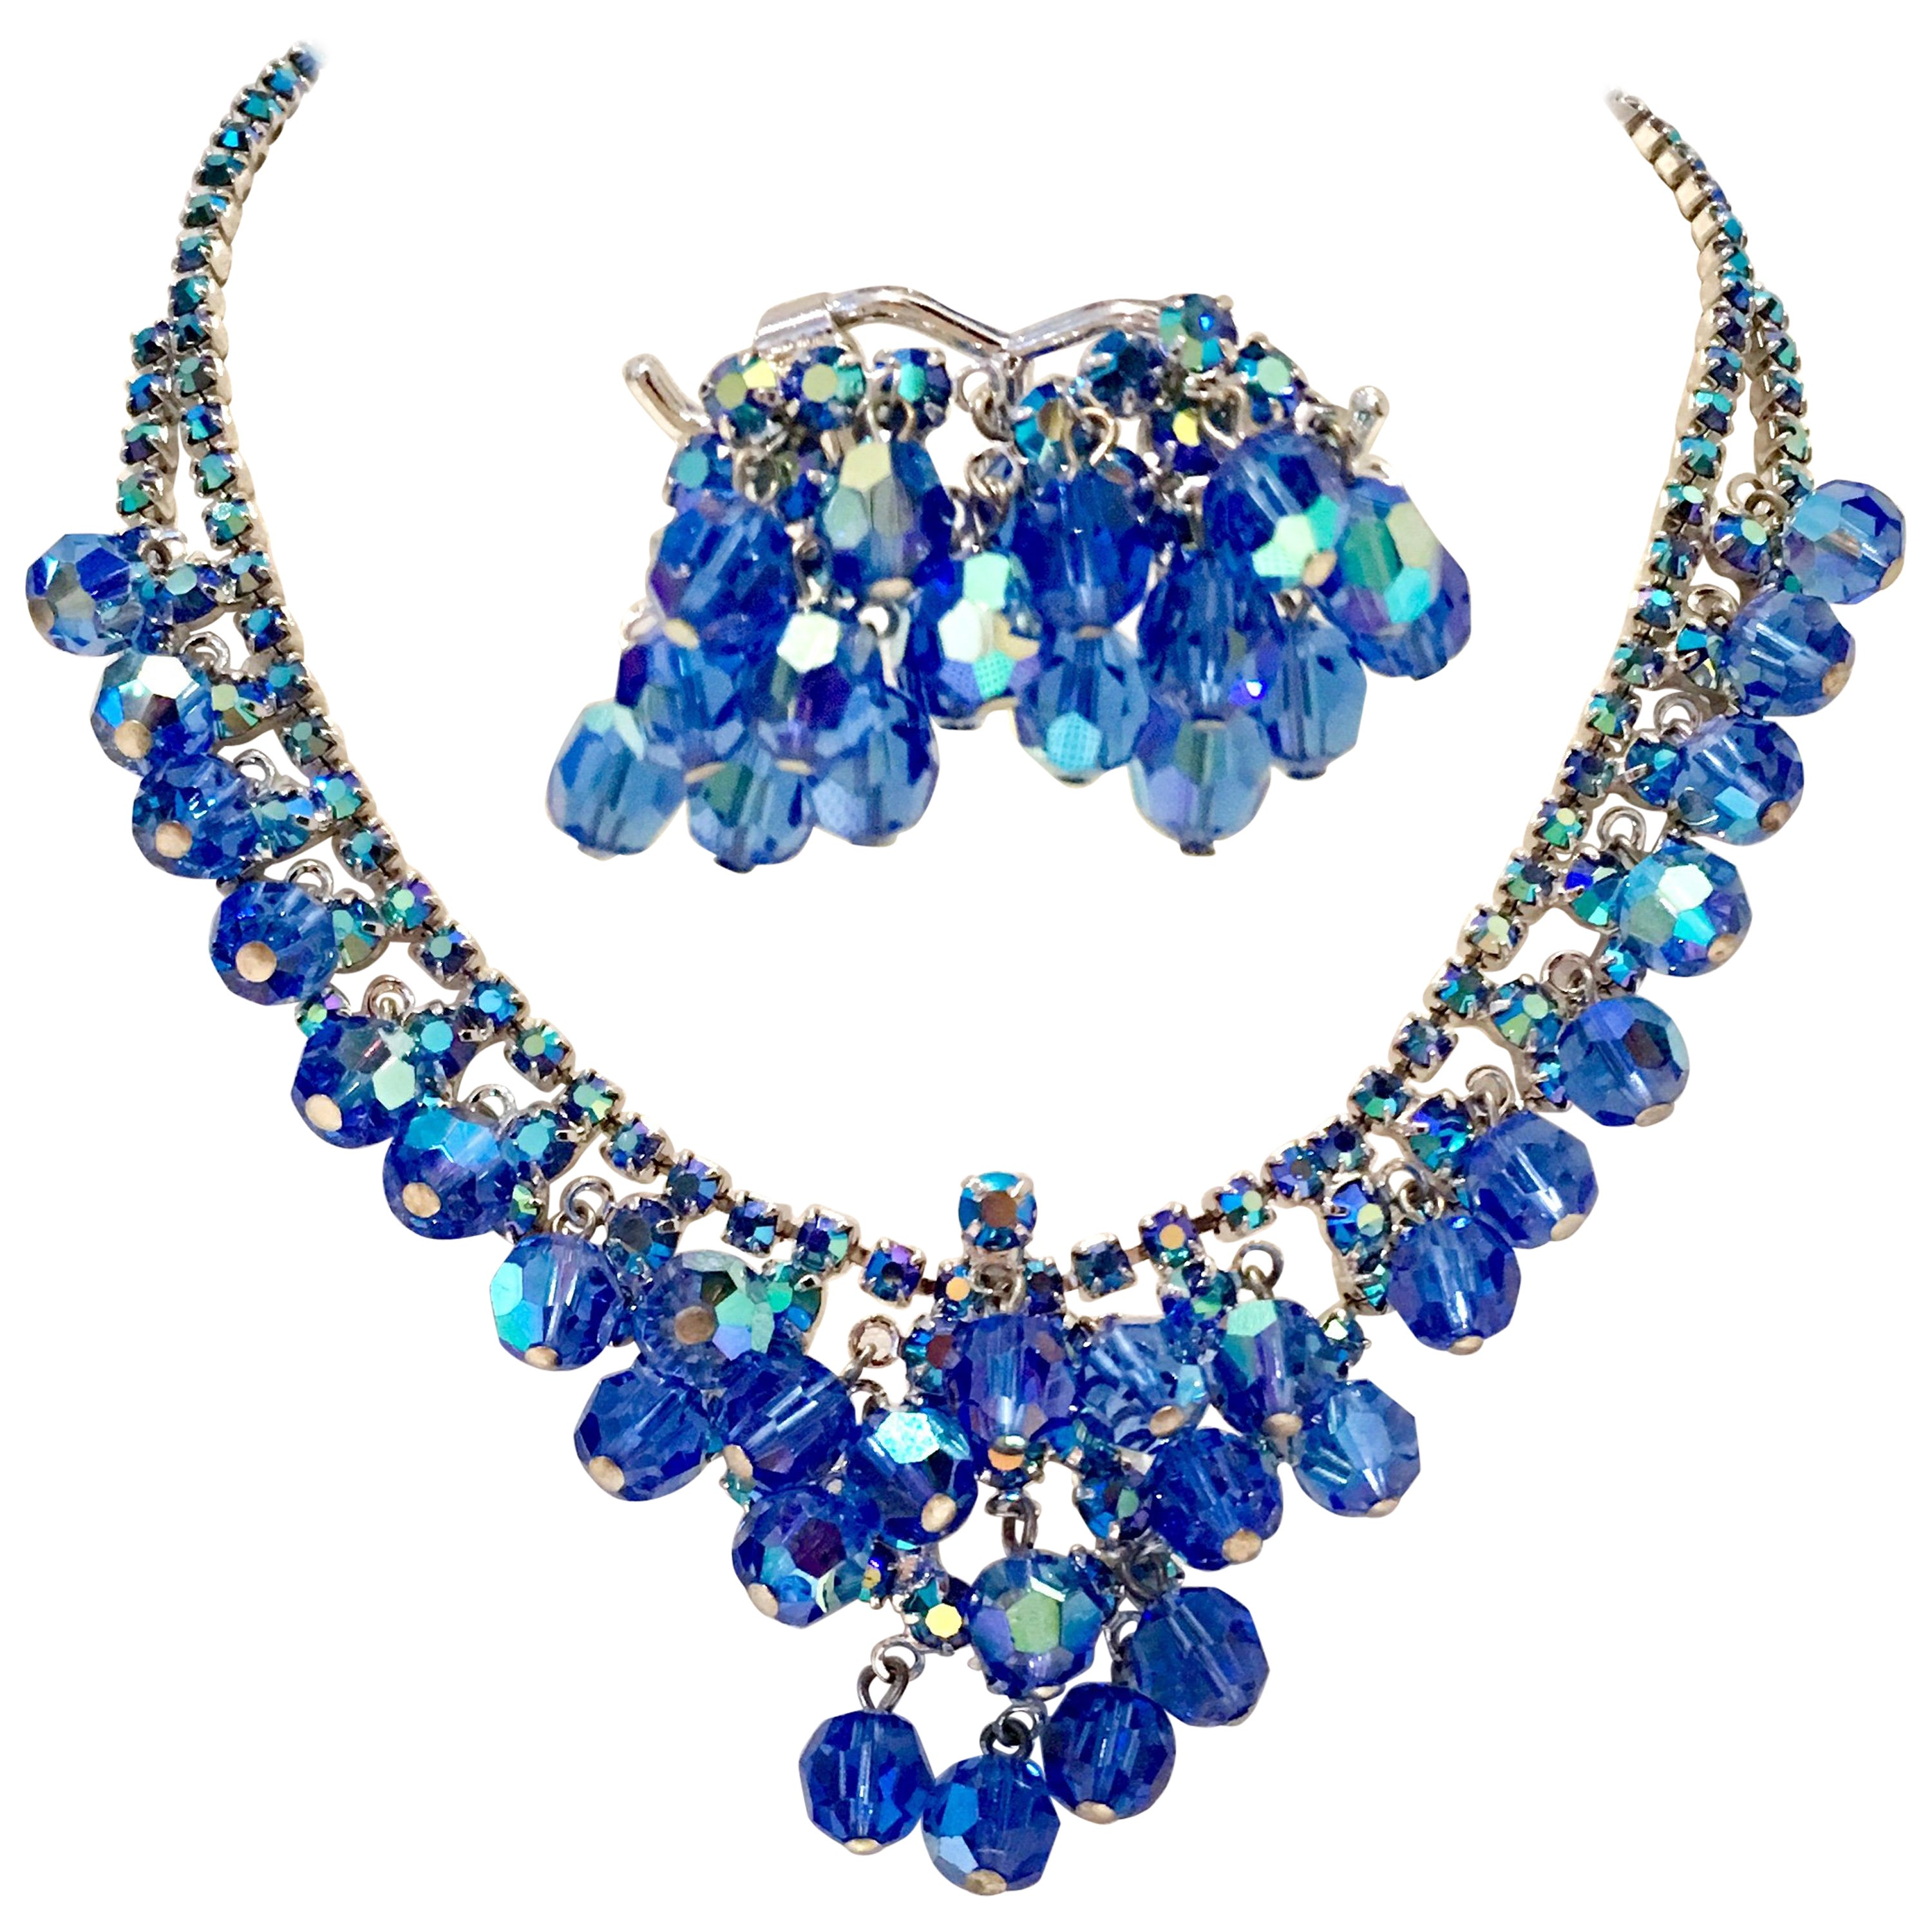 a05ca582c5f00 60'S Silver Swarovski Crystal & Glass Bead Necklace & Earrings Set Of 3  Pieces